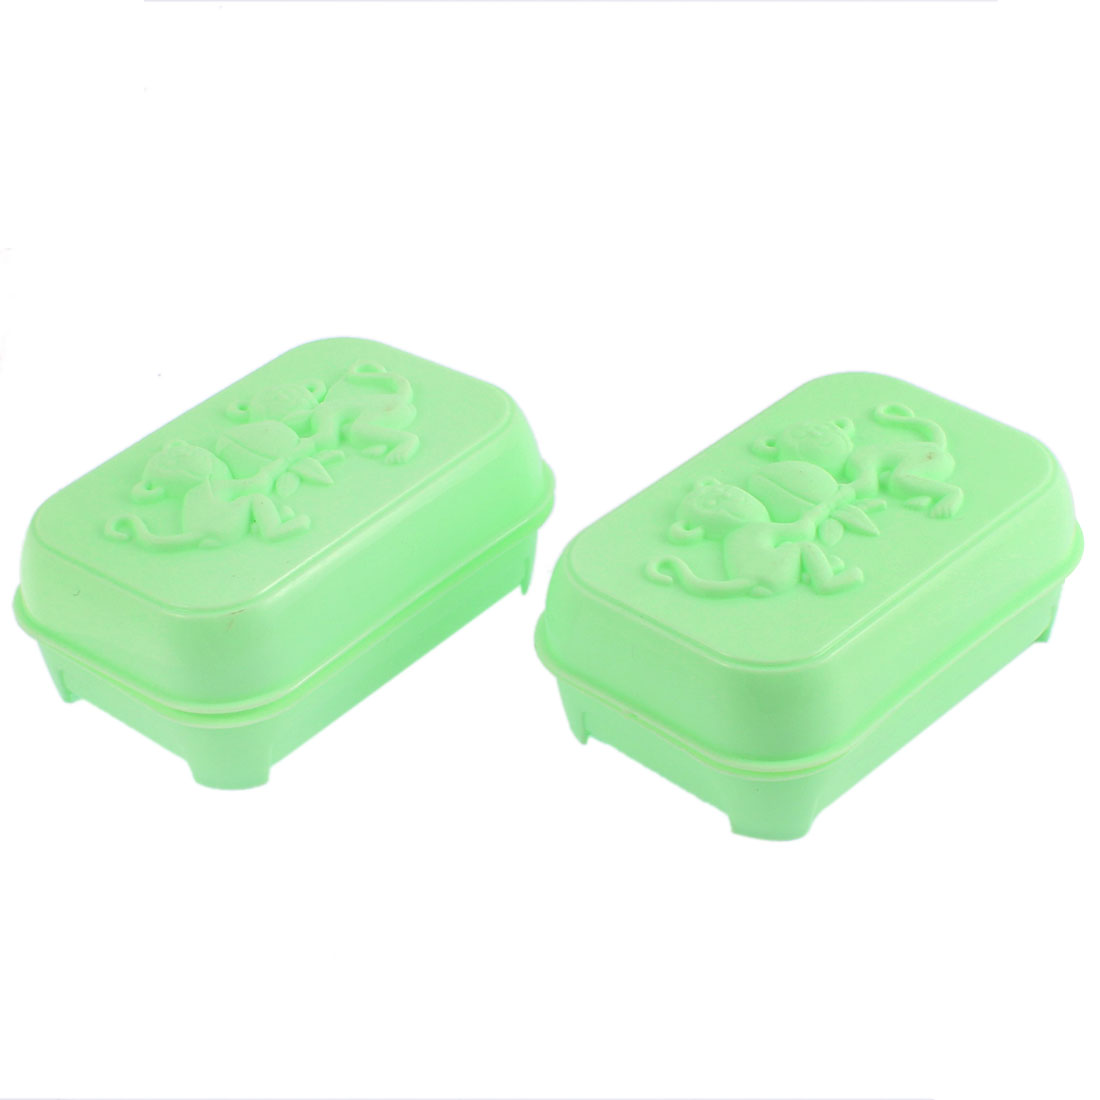 2Pcs Cyan Plastic Monkeys Pattern Hollow Out Bottom Soap Holder Container Box Case